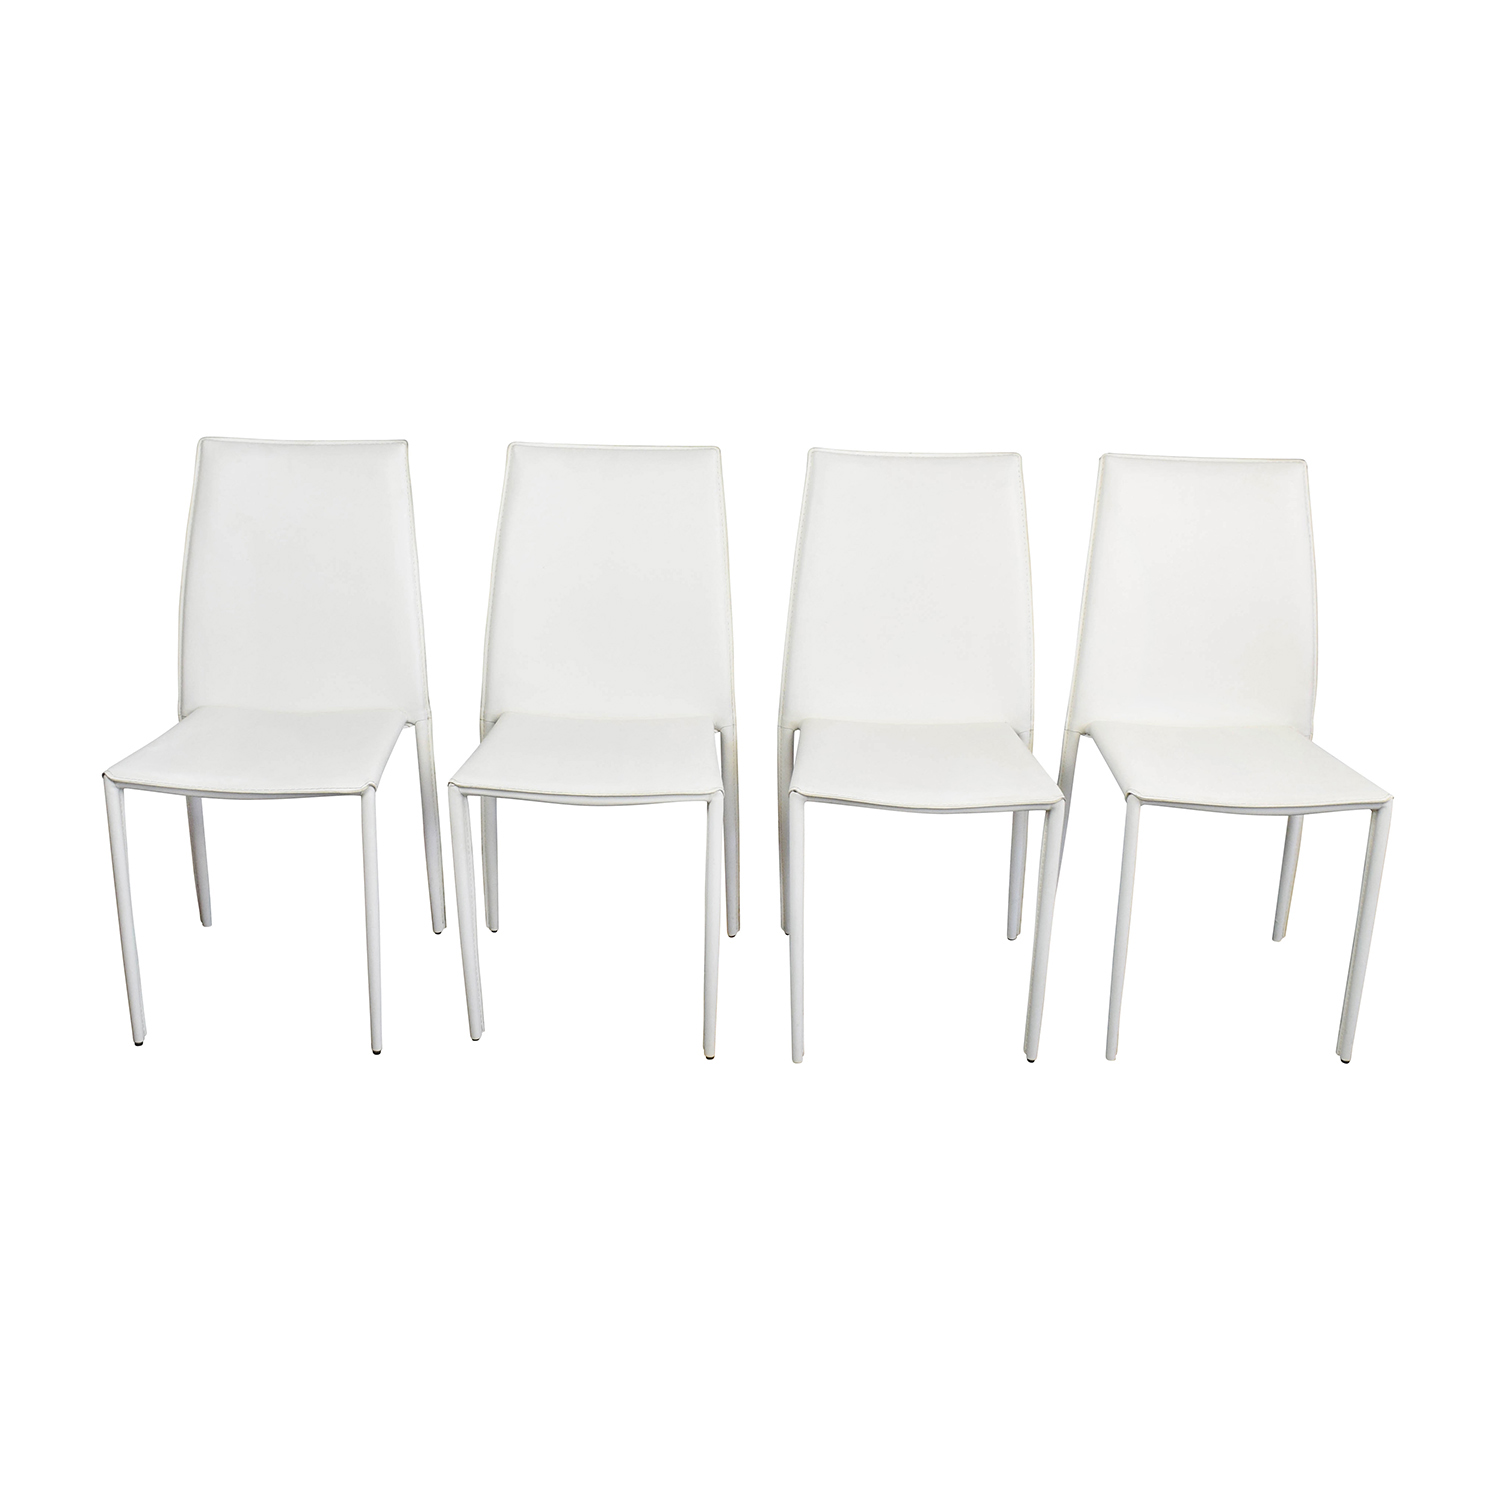 all modern white leather dining chairs all modern .  off  all modern all modern white leather dining chairs  chairs